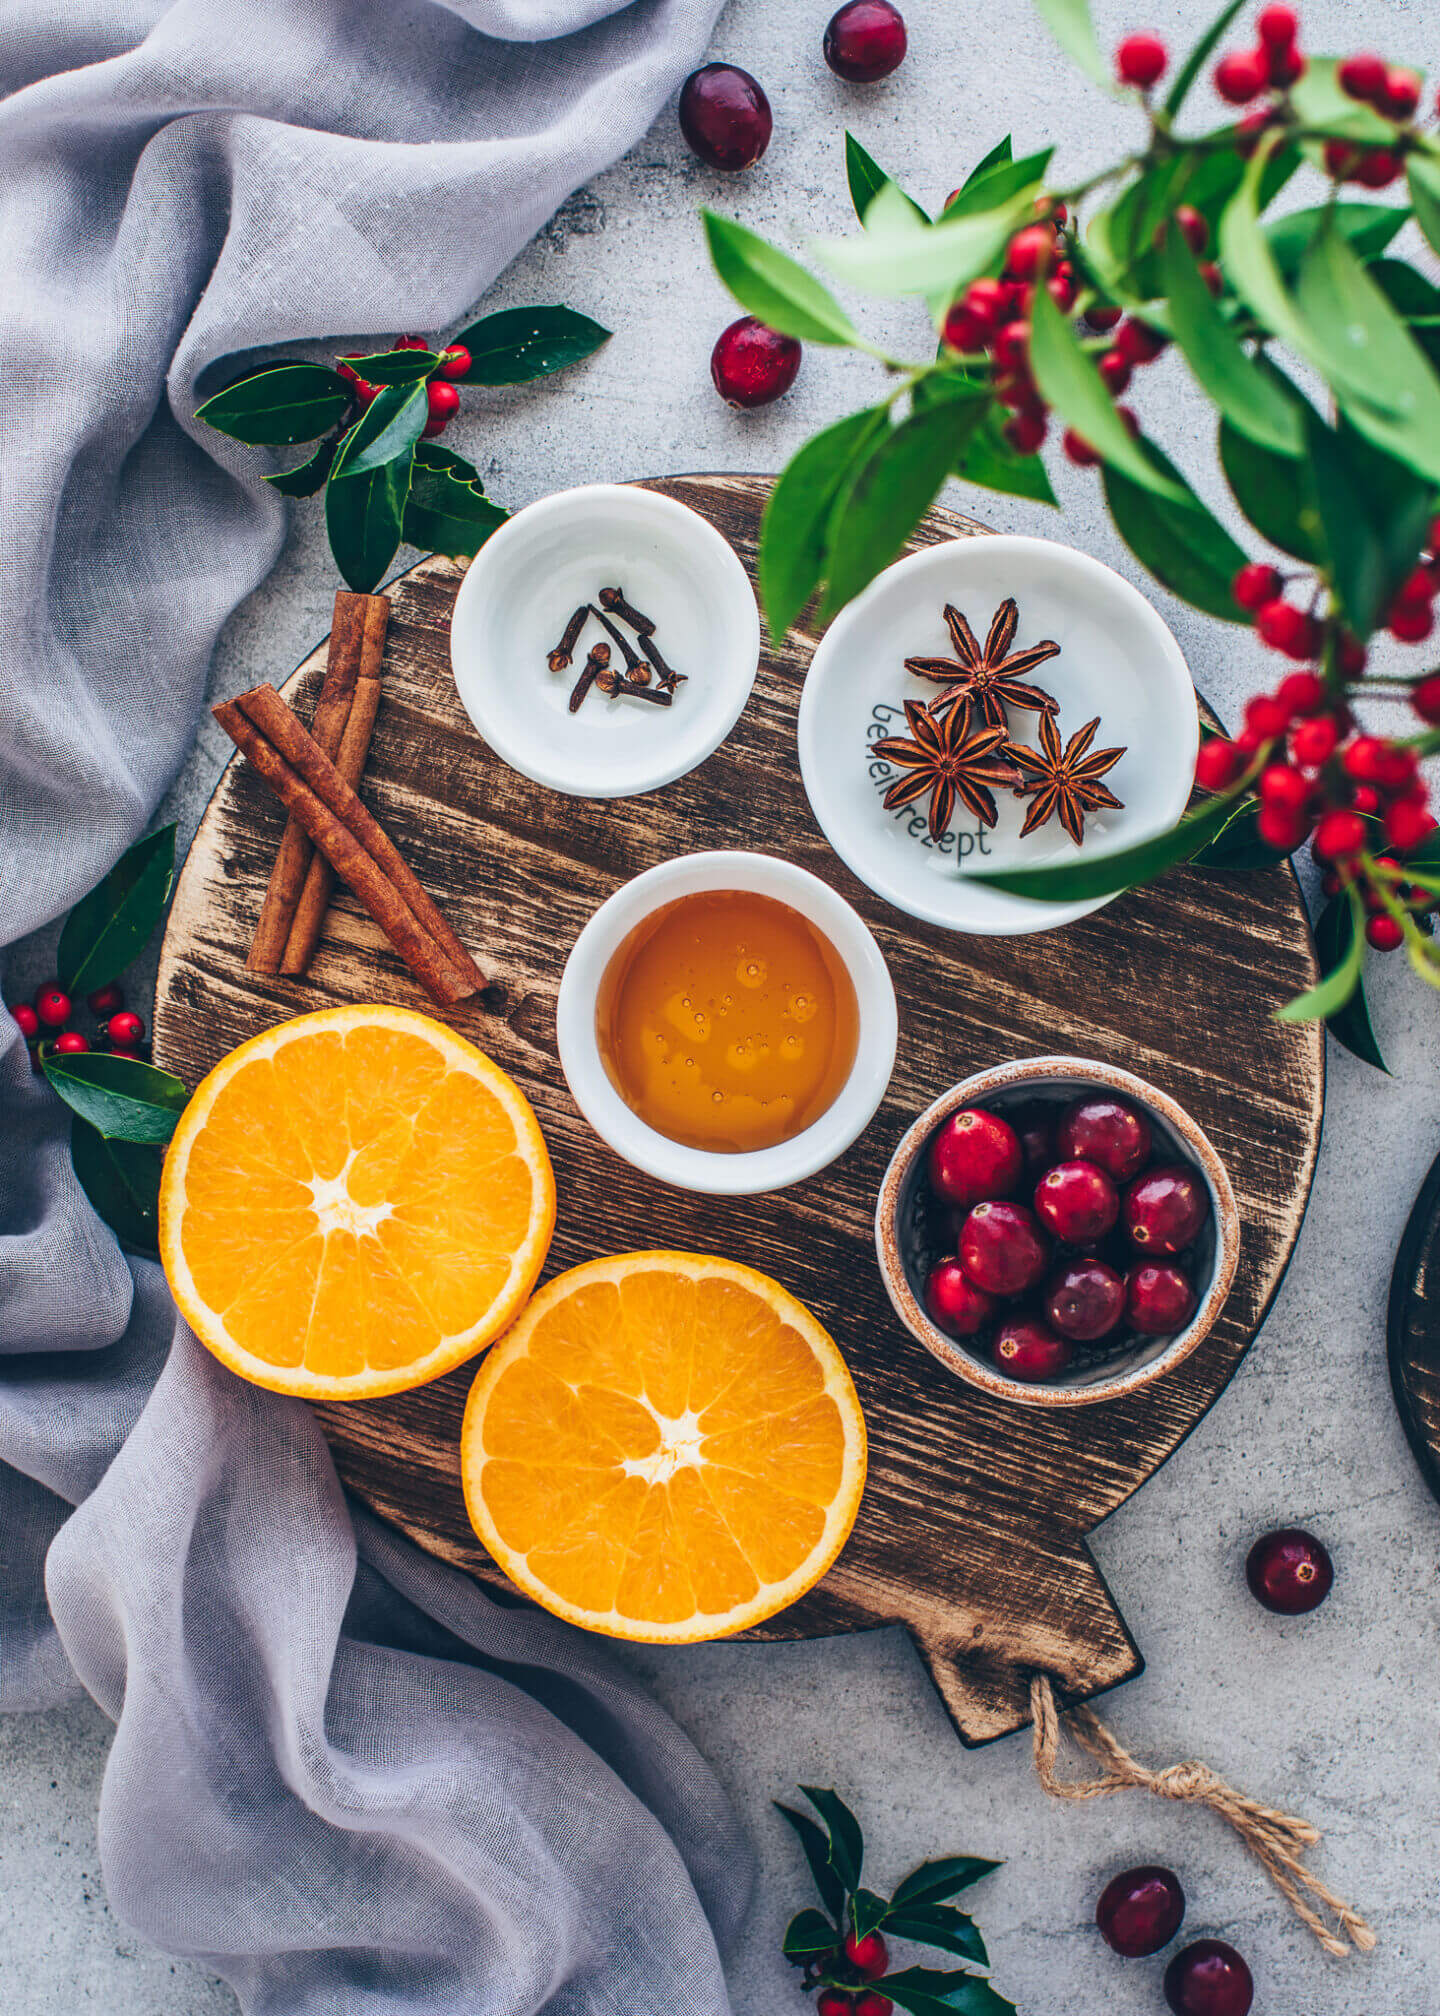 Mulled Wine Ingredients: red wine, oranges, cranberries, star anise, cloves, and cinnamon